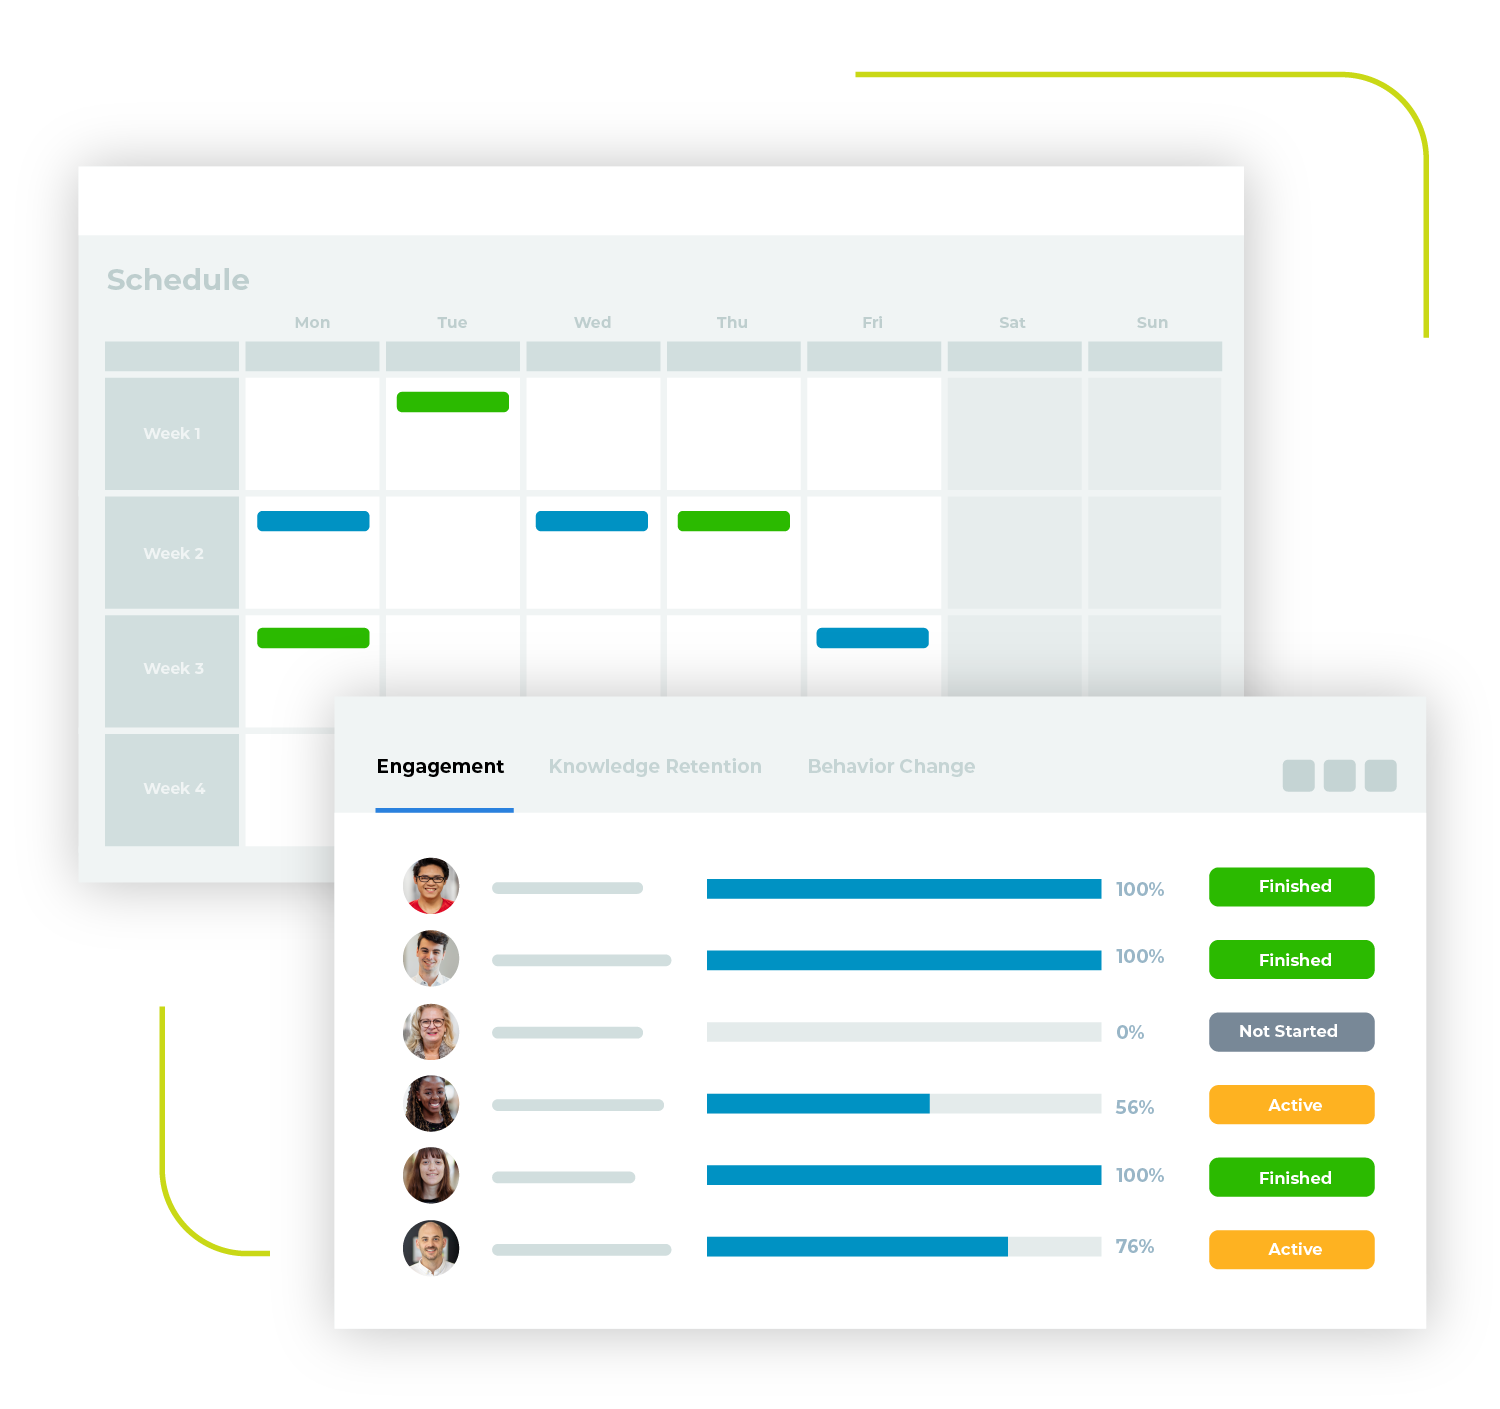 Example of schedule, design, and level of completion in a microlearning program.